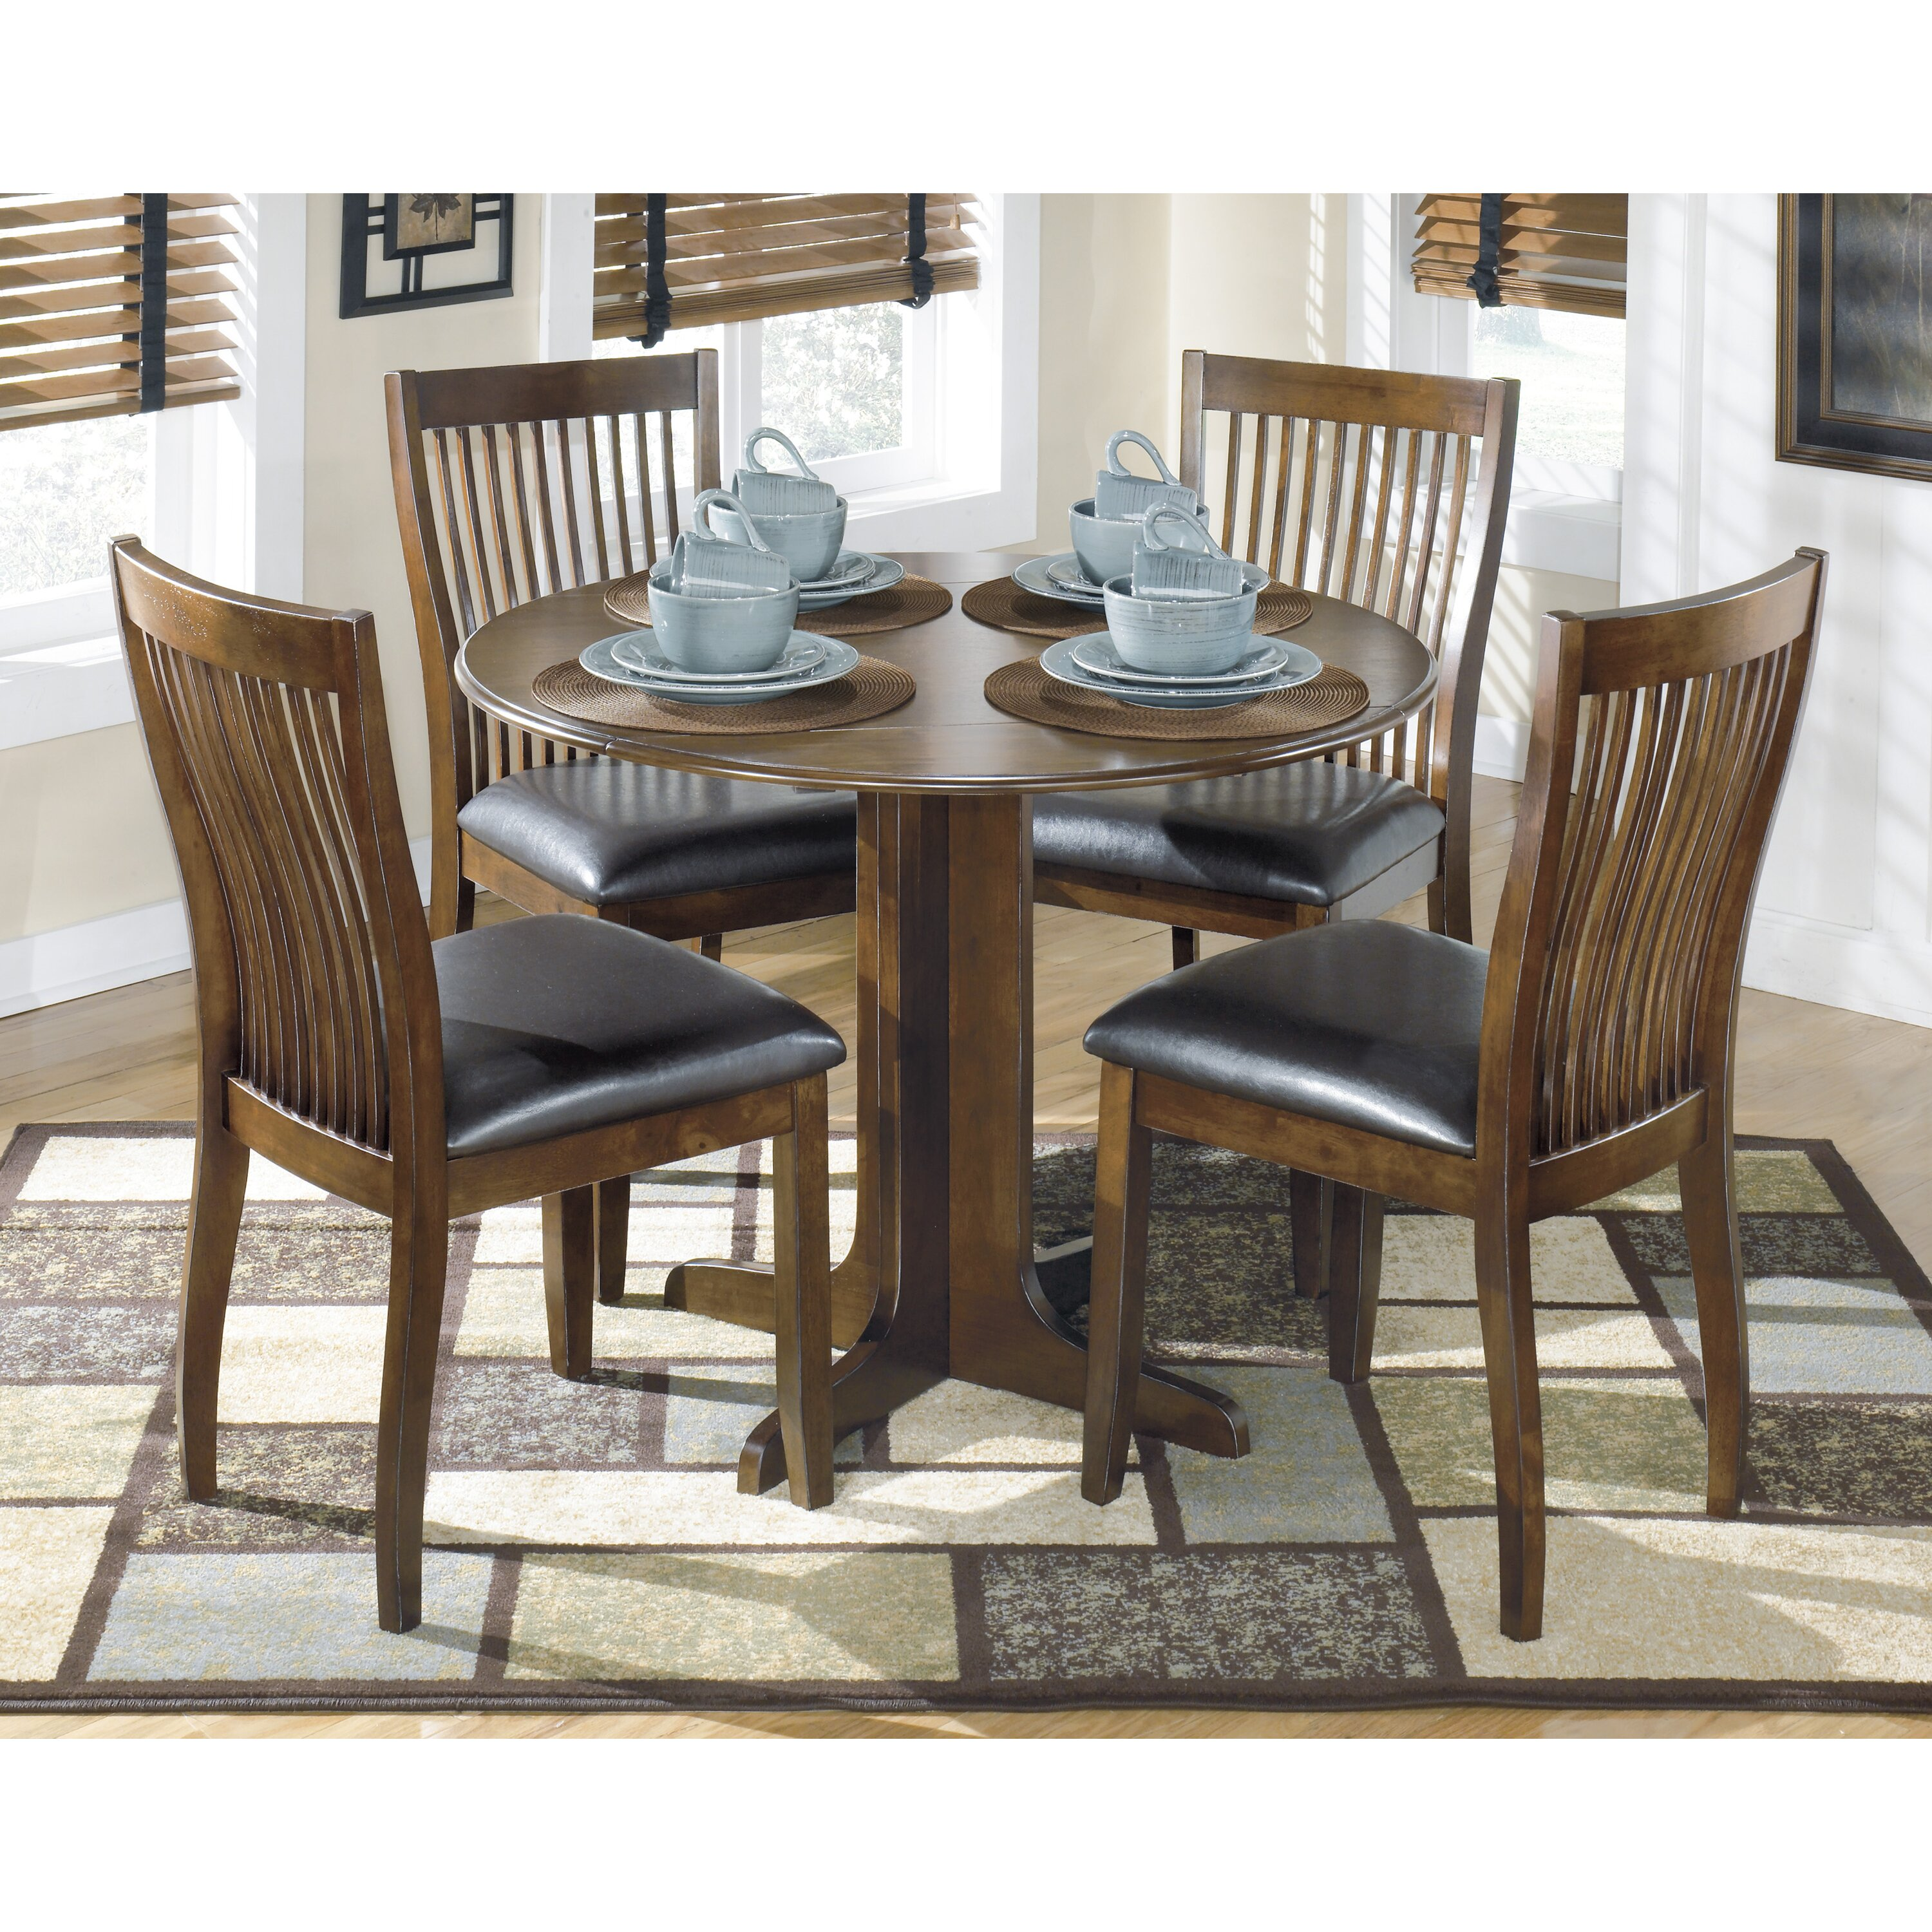 Drop Leaf Table Dining: Signature Design By Ashley Stuman Drop Leaf Dining Table